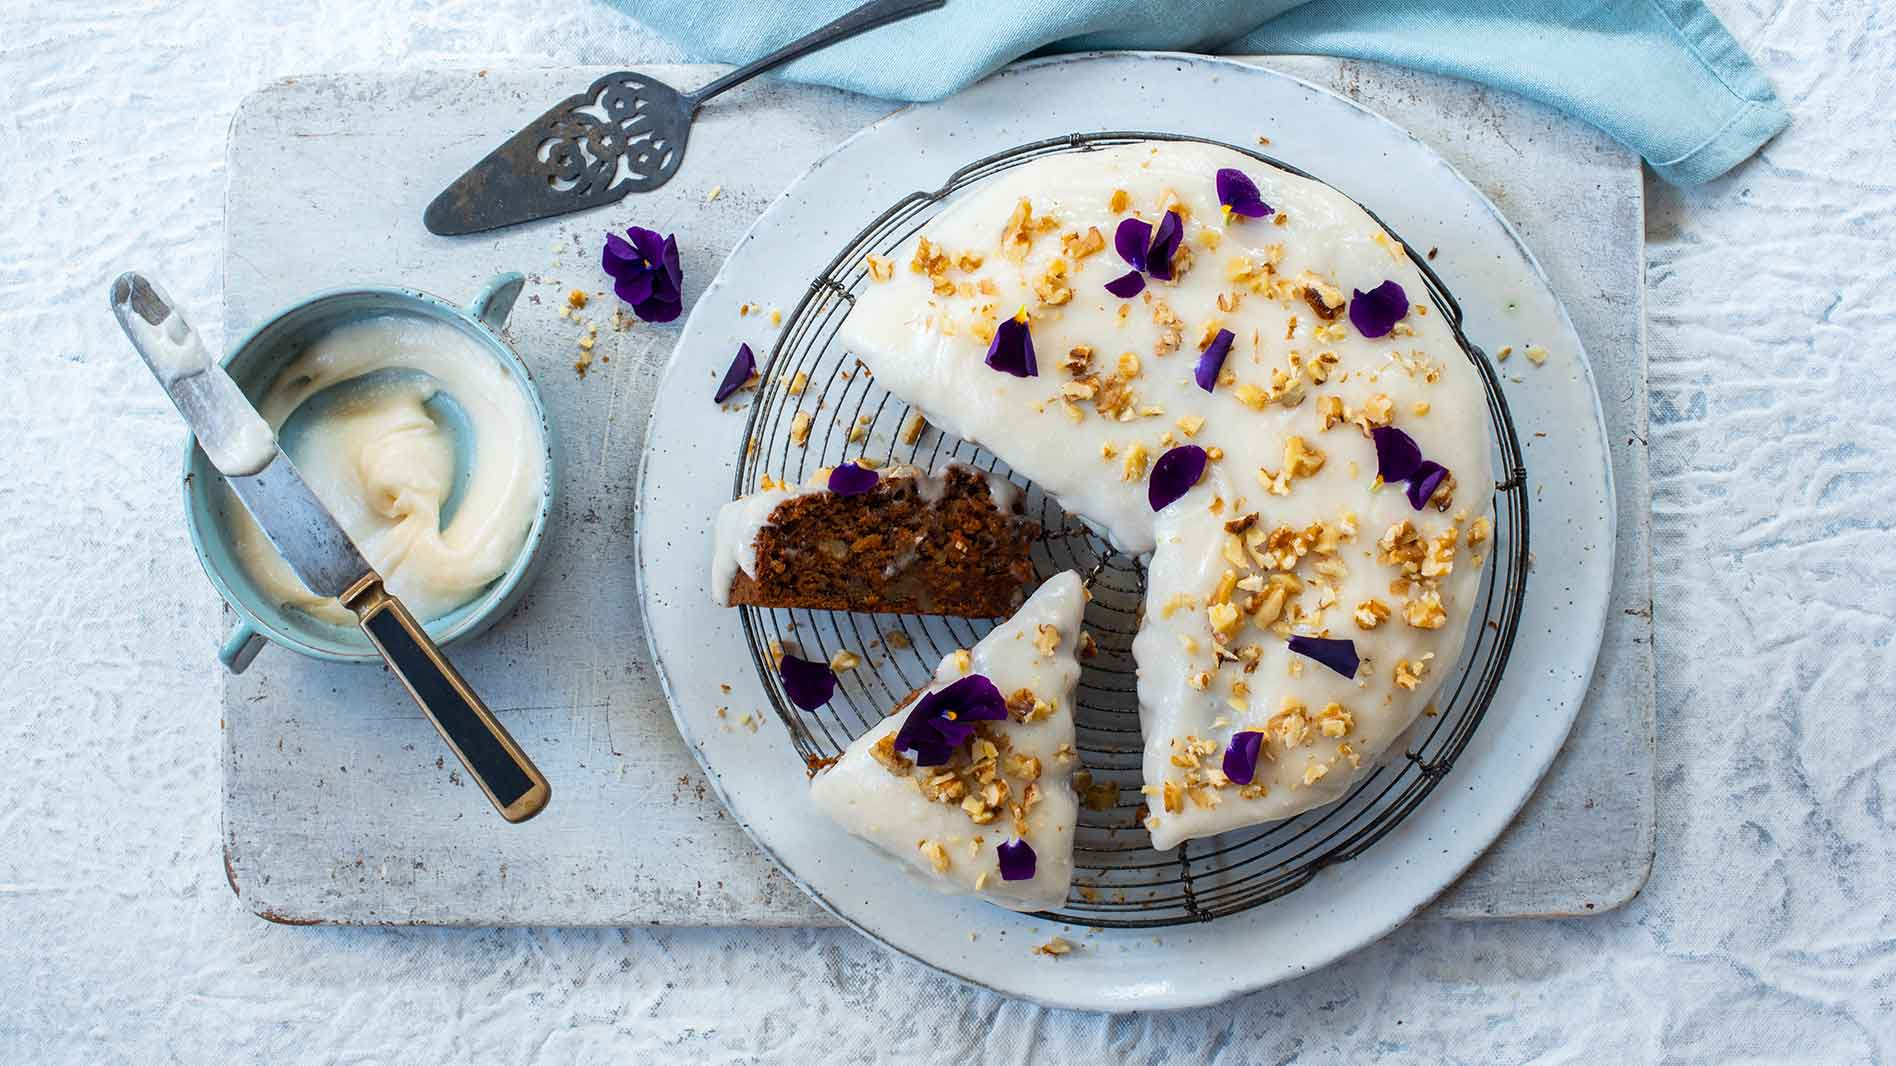 Carrot Cake With Vegan Cream Cheese Frosting